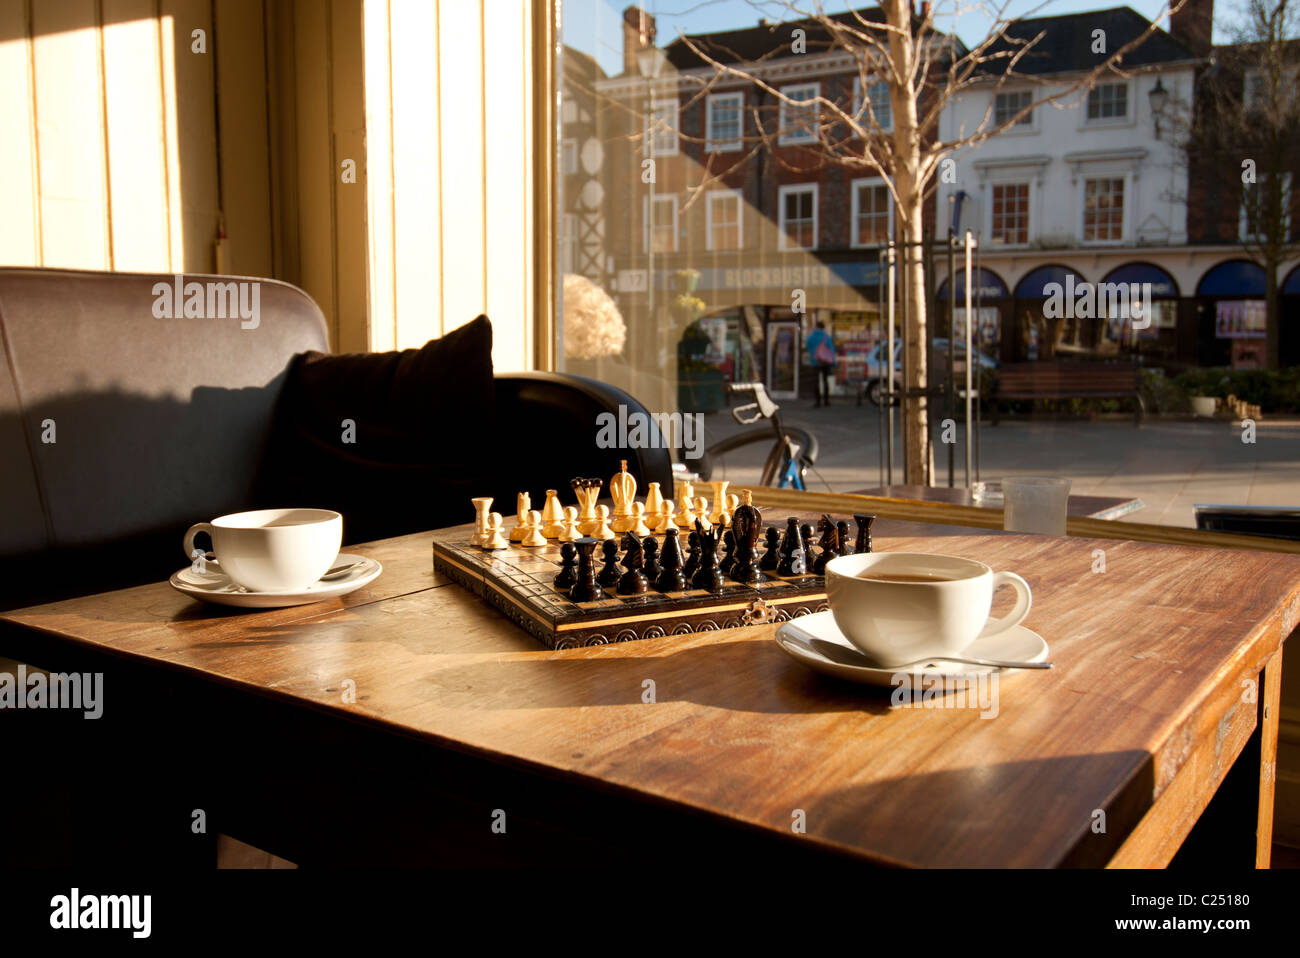 Attrayant Game Of Chess Set Out On A Coffee Table With Two Cups